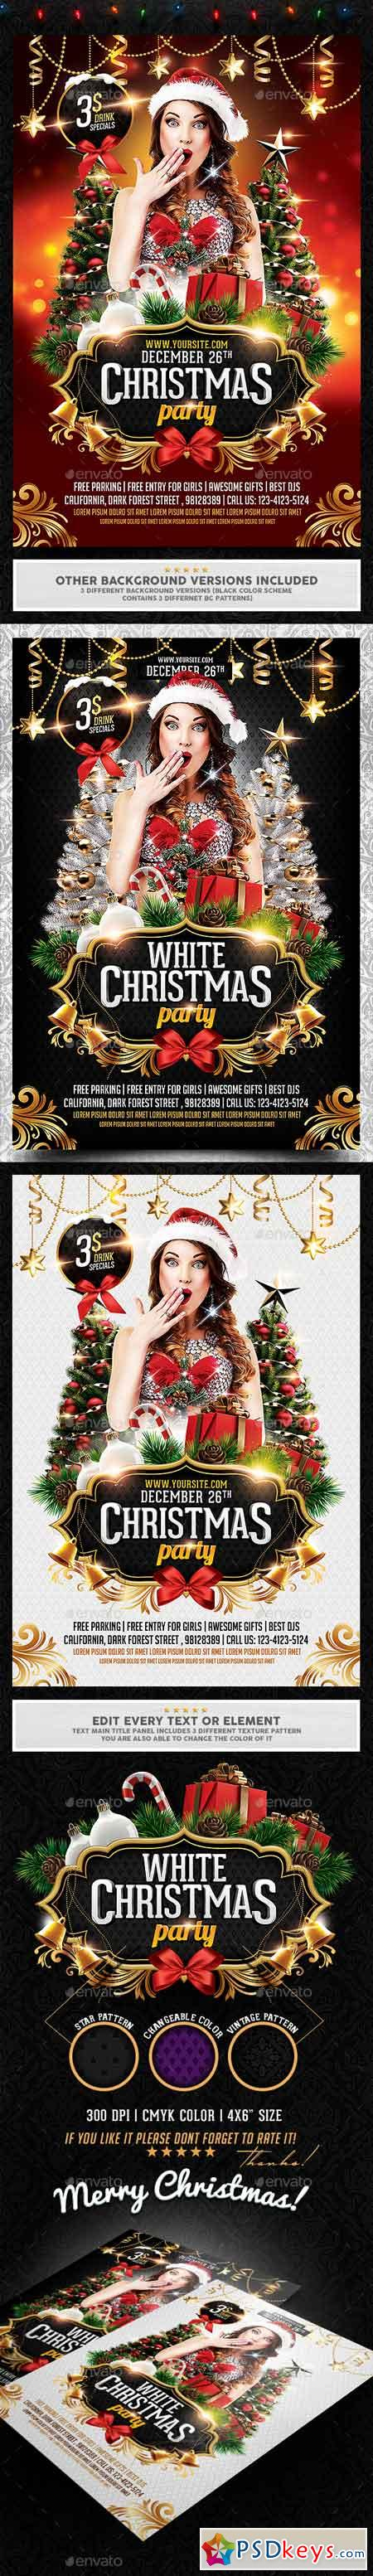 christmas party flyer 18519336 photoshop vector christmas party flyer 18519336